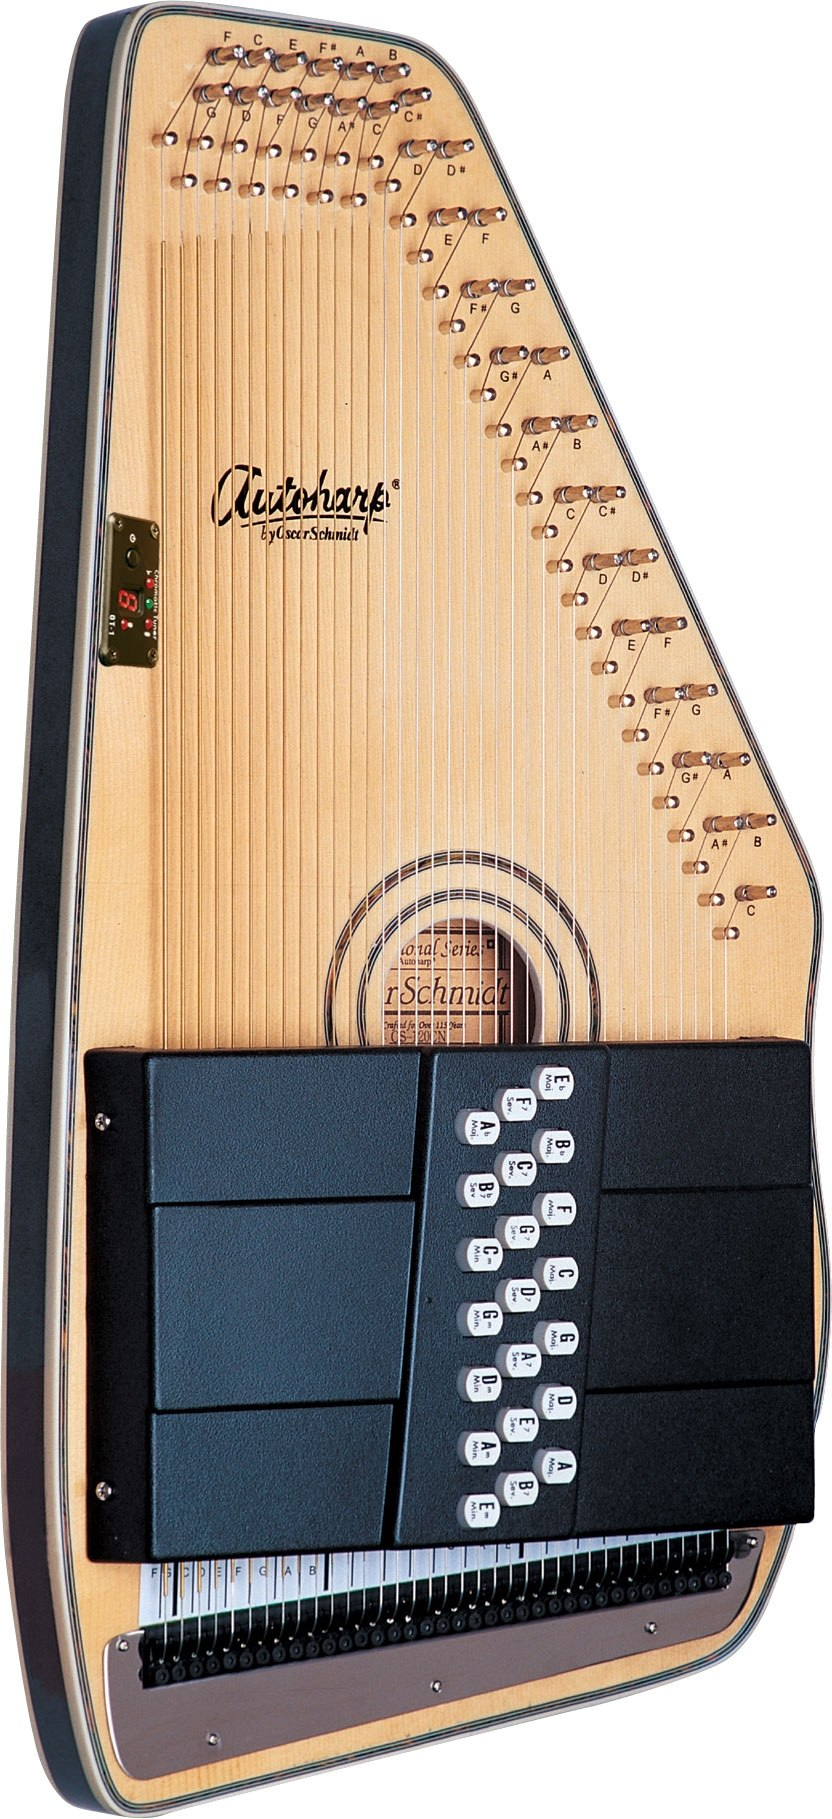 Autoharp today